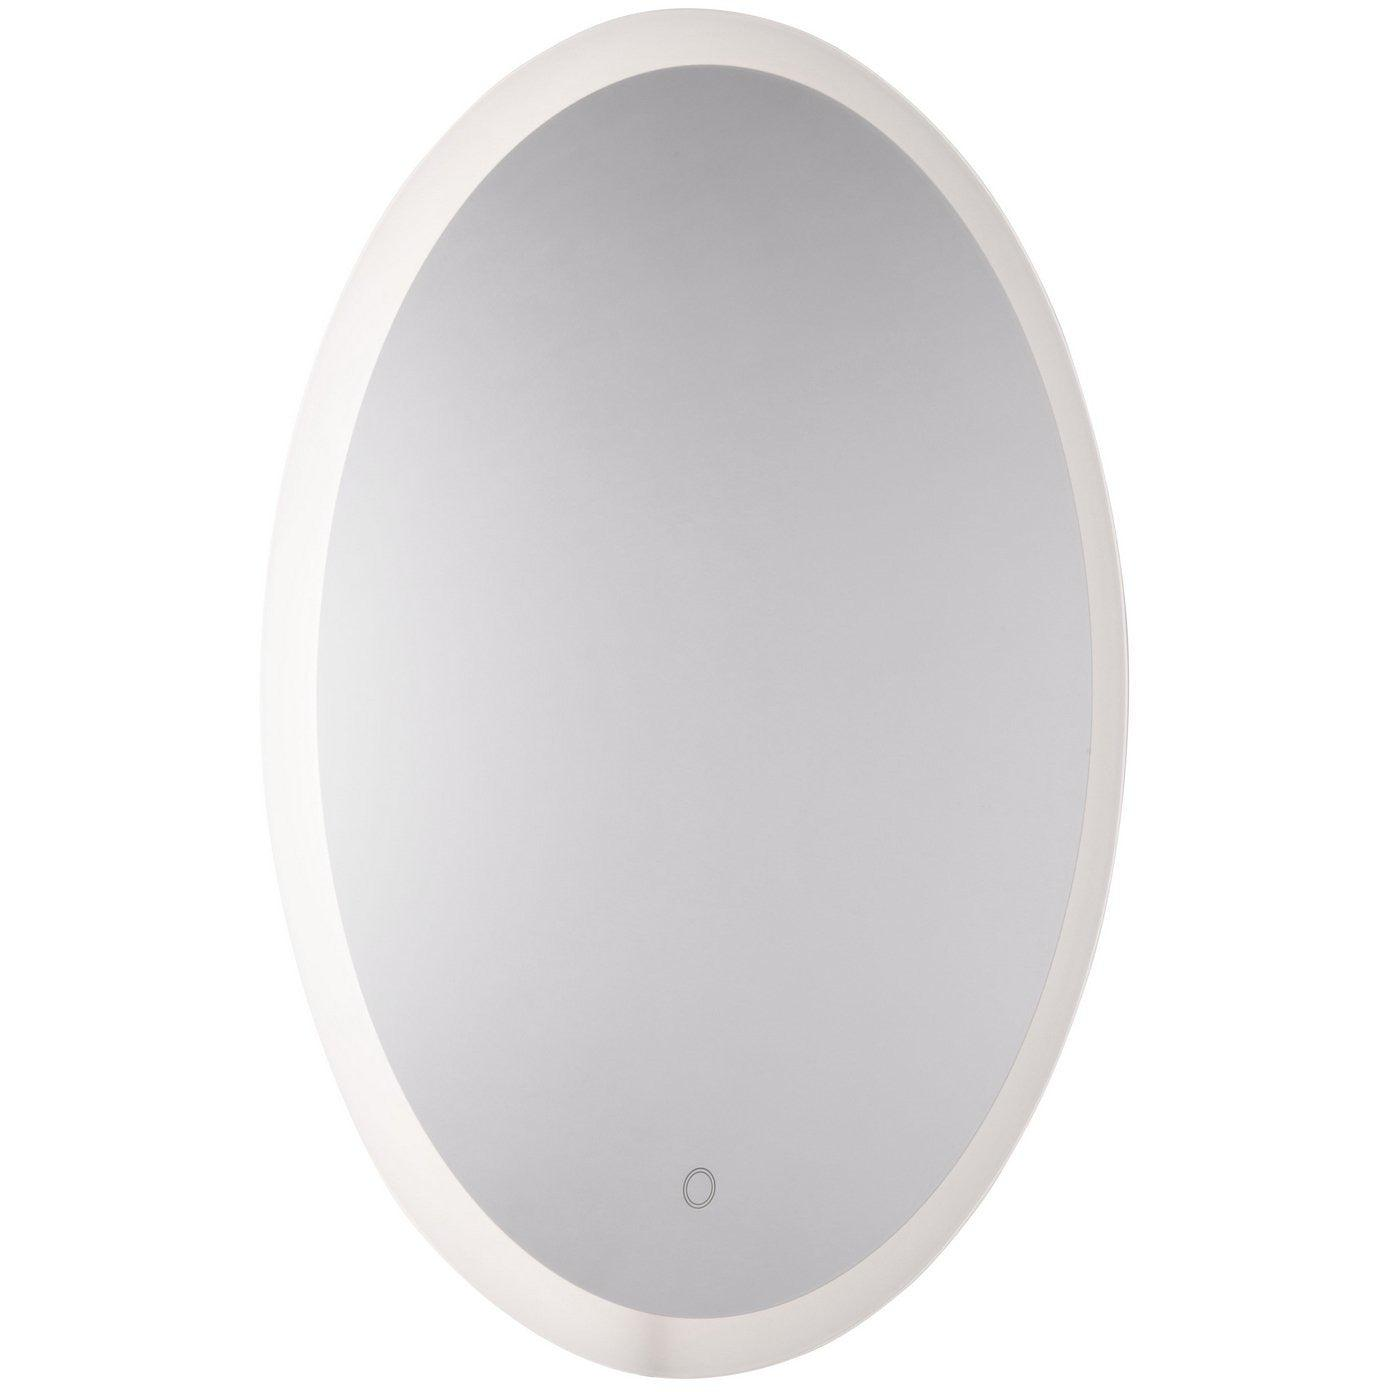 Artcraft Lighting - AM318 - LED Mirror - Reflections - Frosted Edge